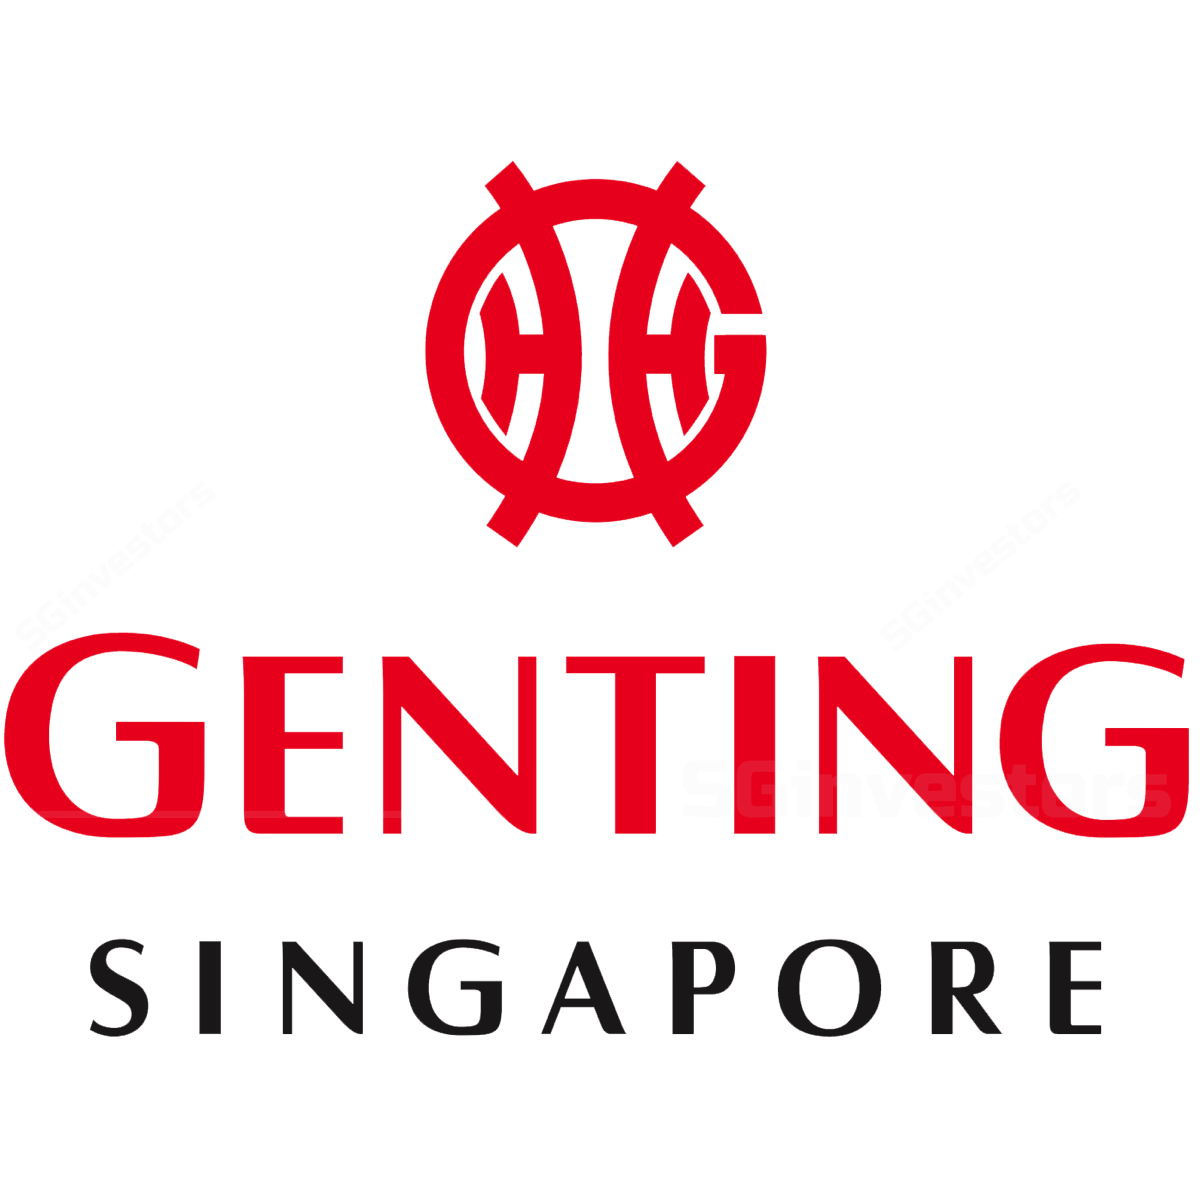 Genting Singapore - OCBC Investment Research 2018-08-06: Japan Ir Implementation Bill Has Been Enacted